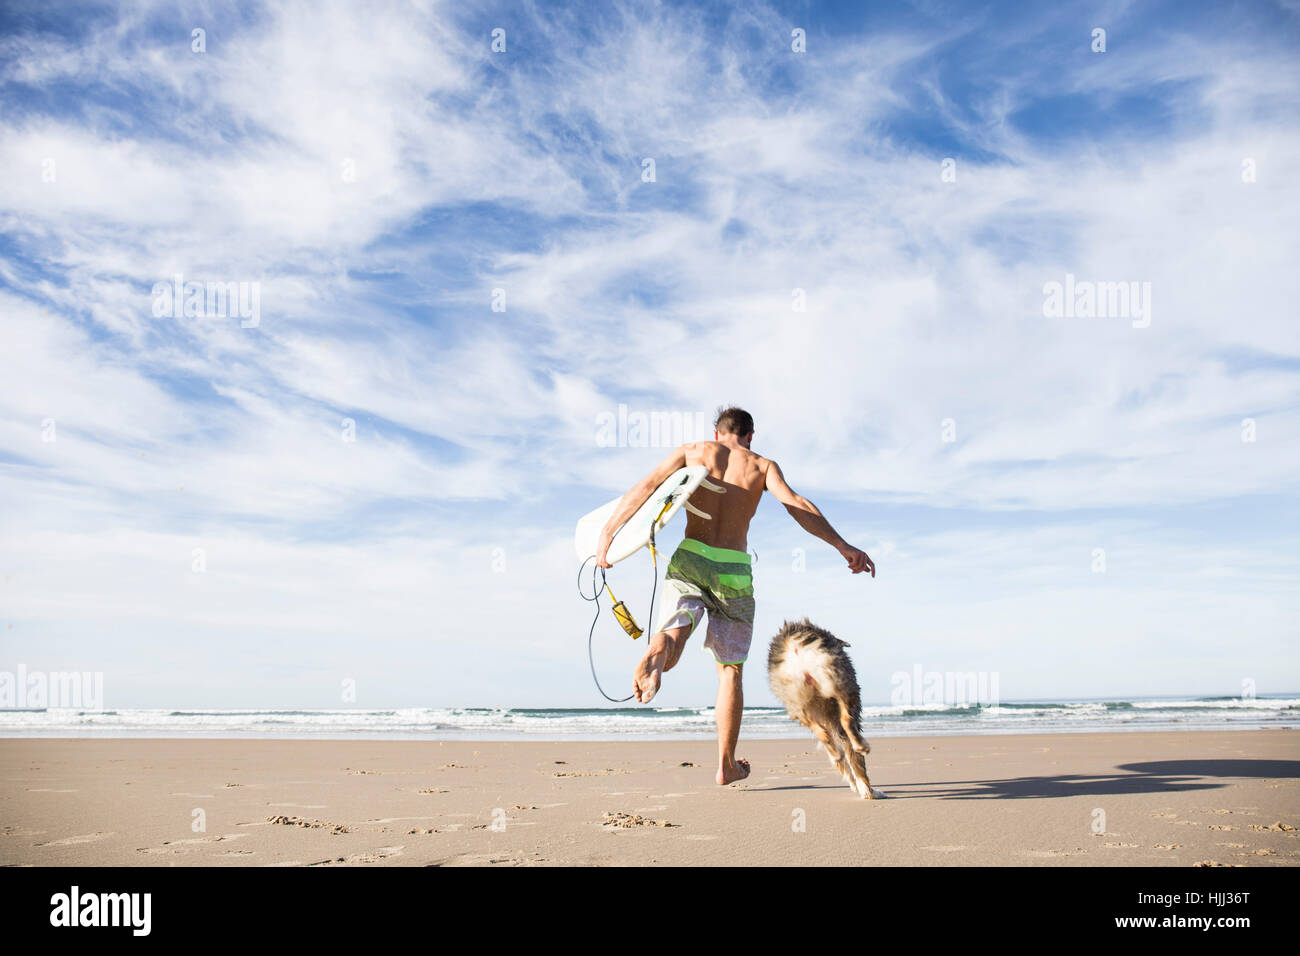 Man carrying surfboard running with dog on the beach - Stock Image